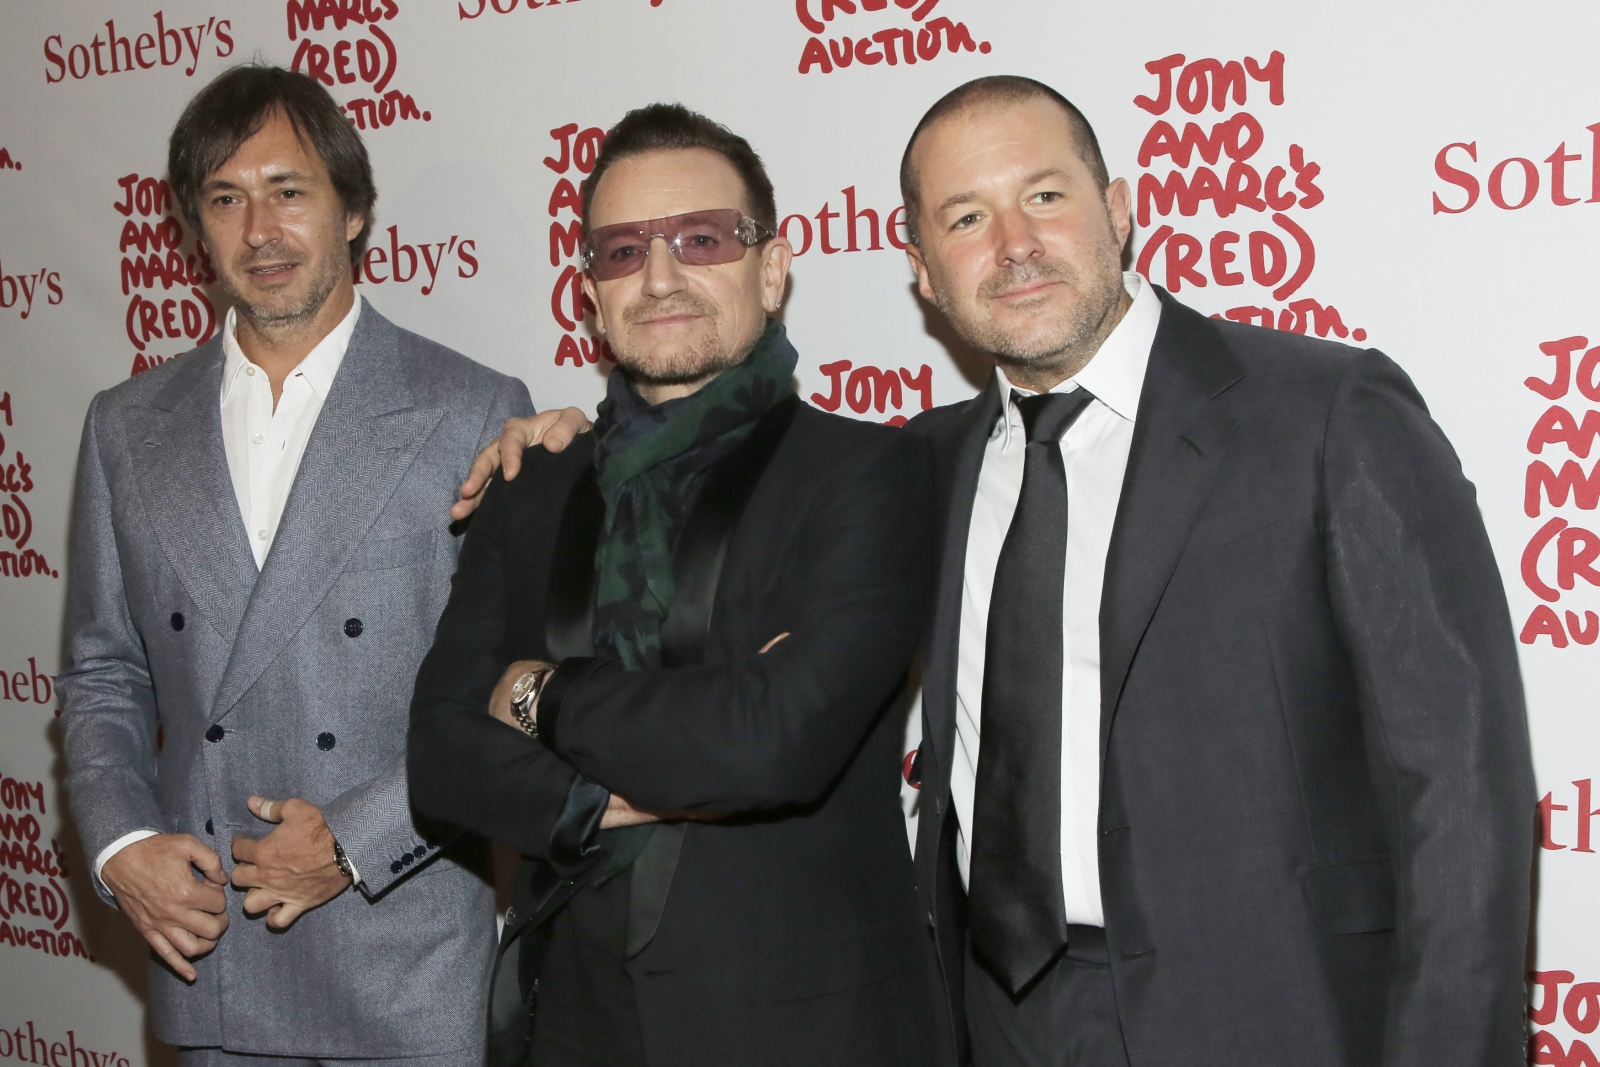 Designer Marc Newson (L), Singer Bono (C) and Apple's Senior Vice President of Design Jony Ive attend Jony And Marc's (RED) Auction at Sotheby's in New York